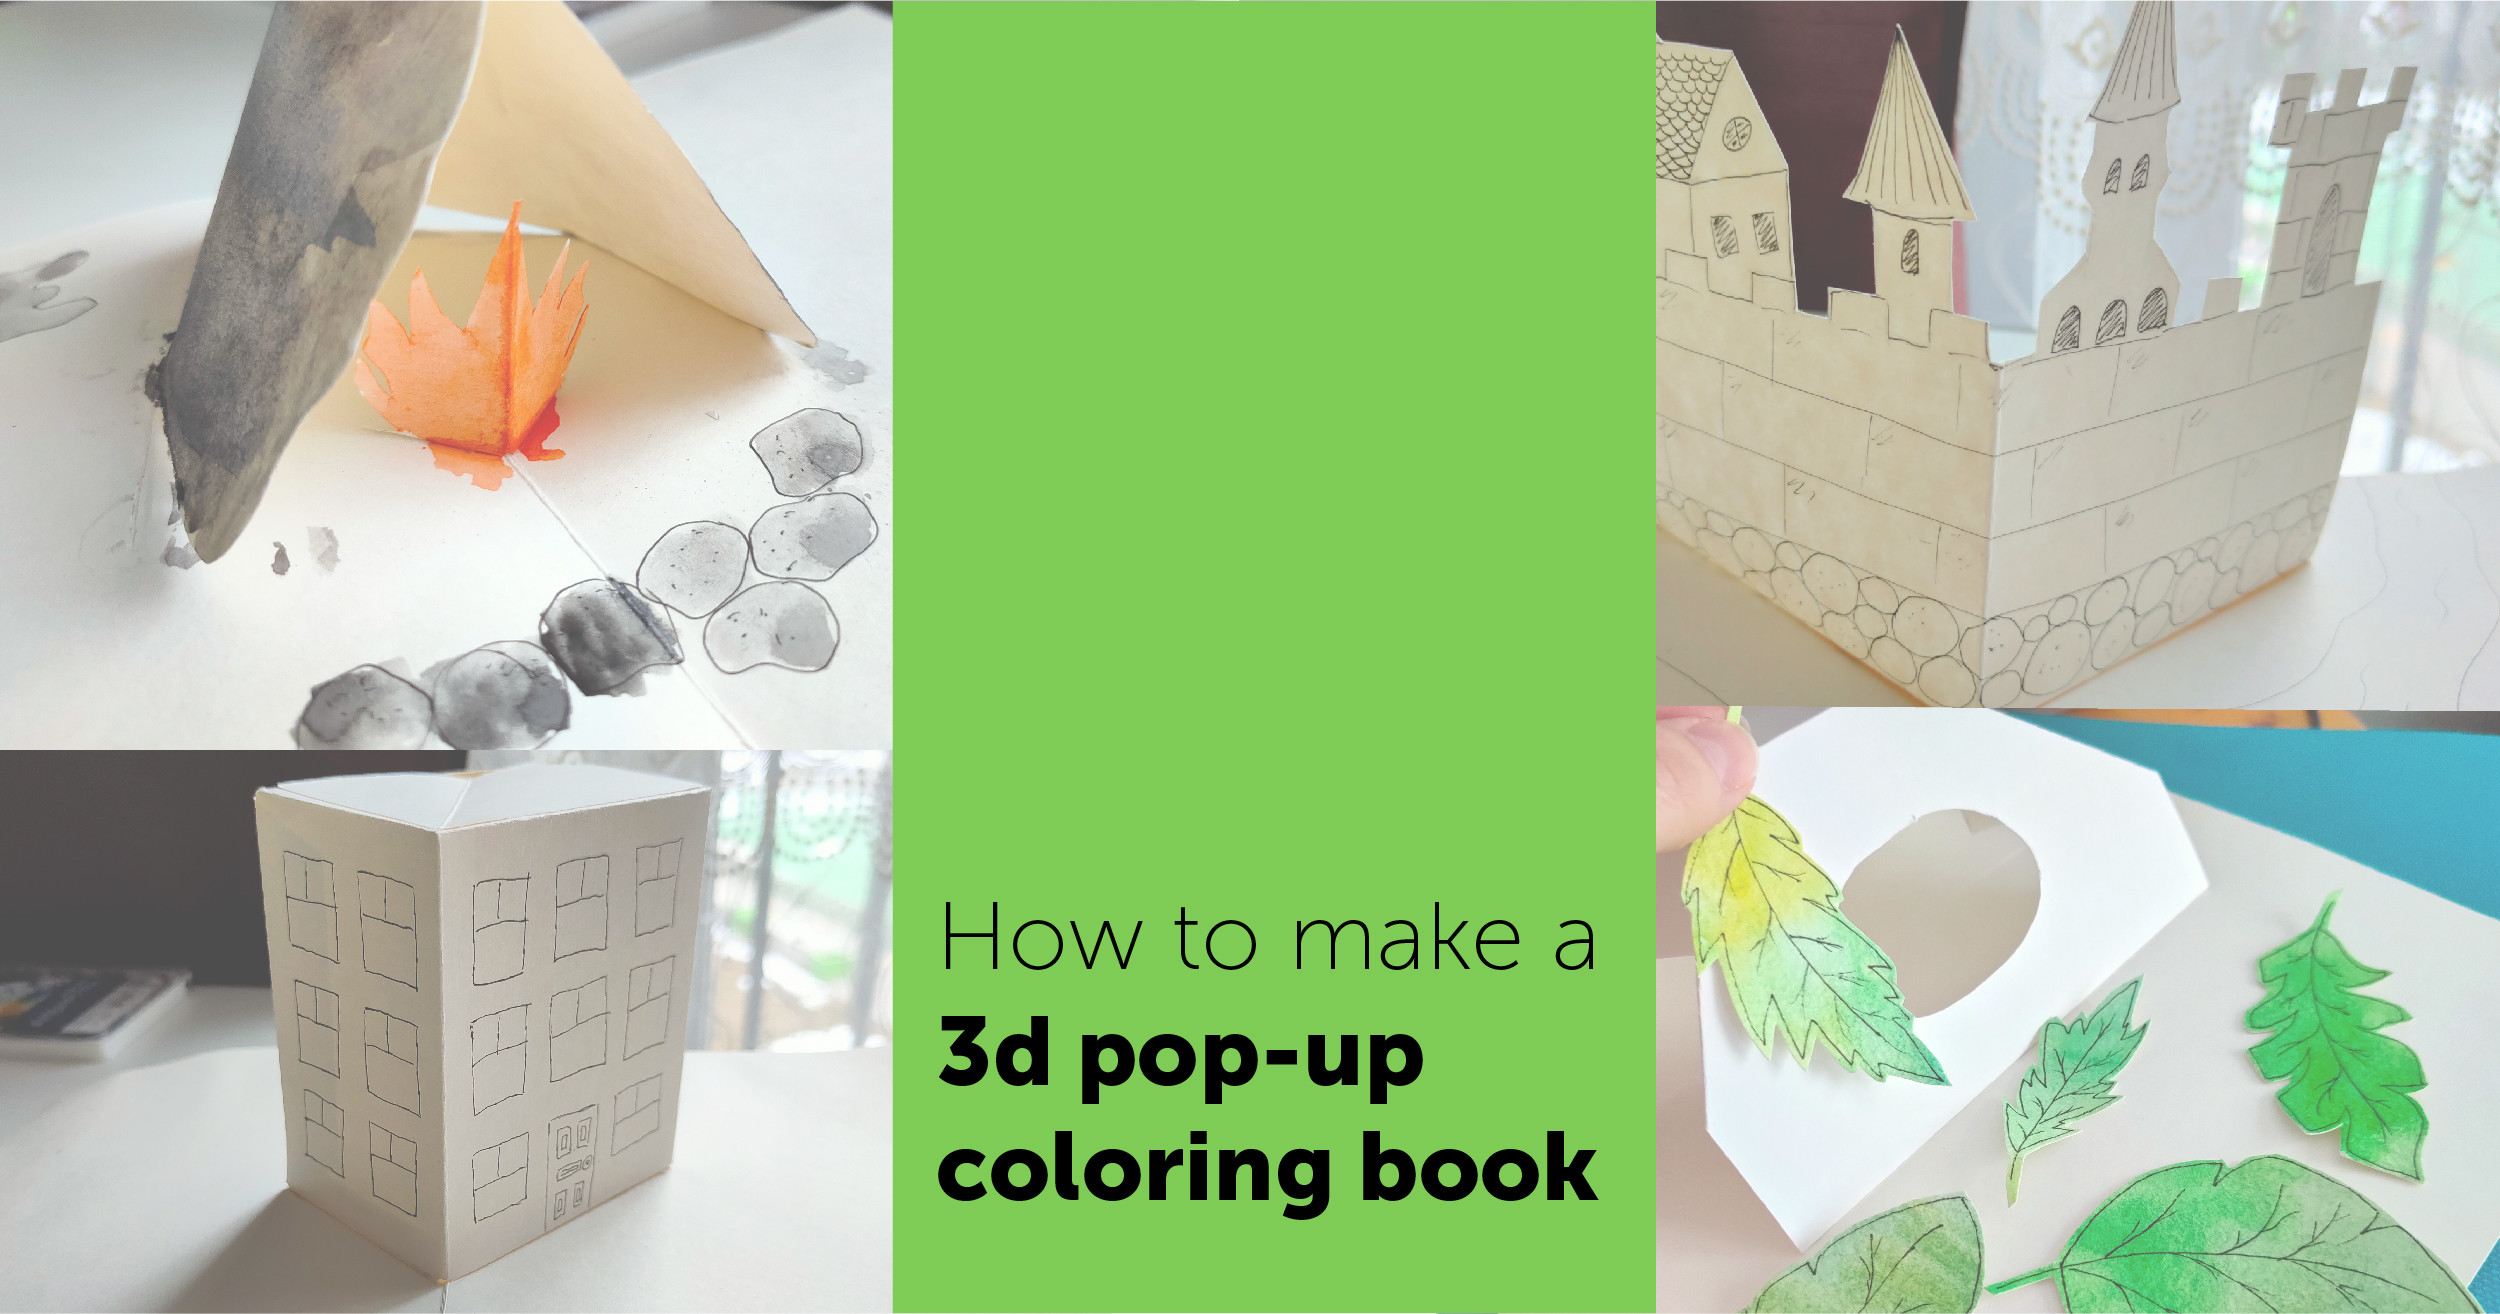 3D Pop-Up Coloring Book: Tips & Video